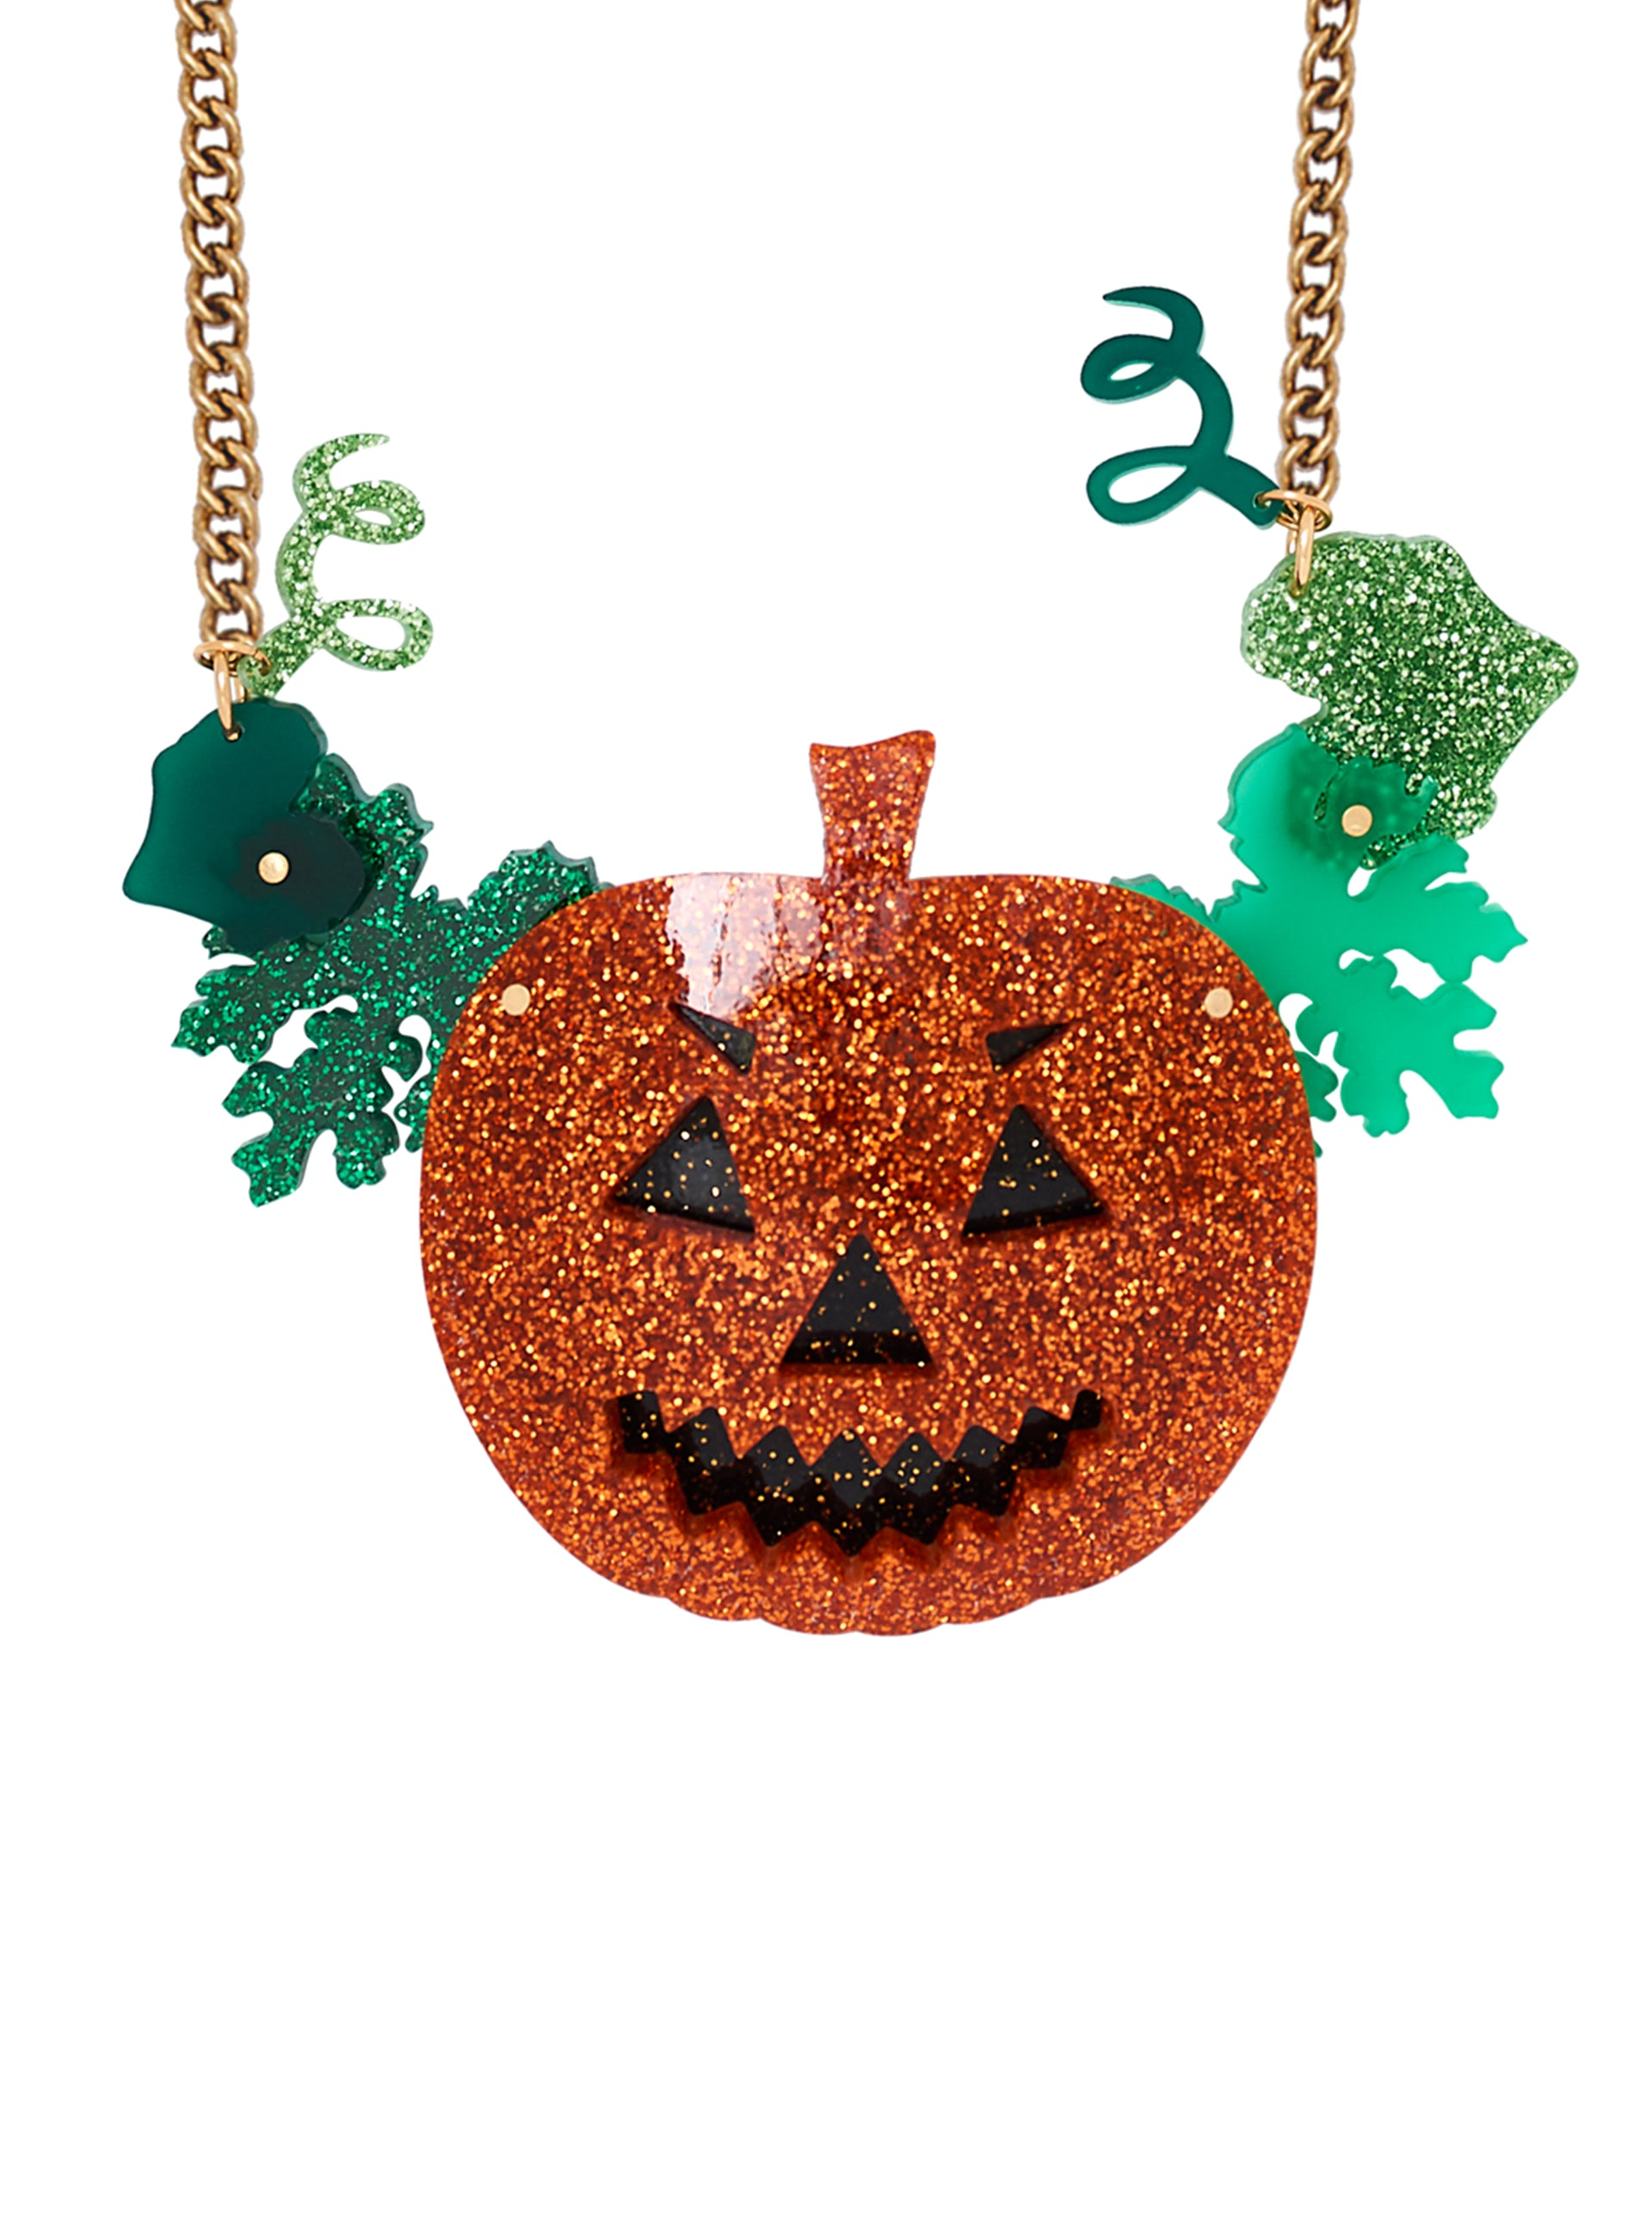 Jack-O-Lantern Statement Necklace